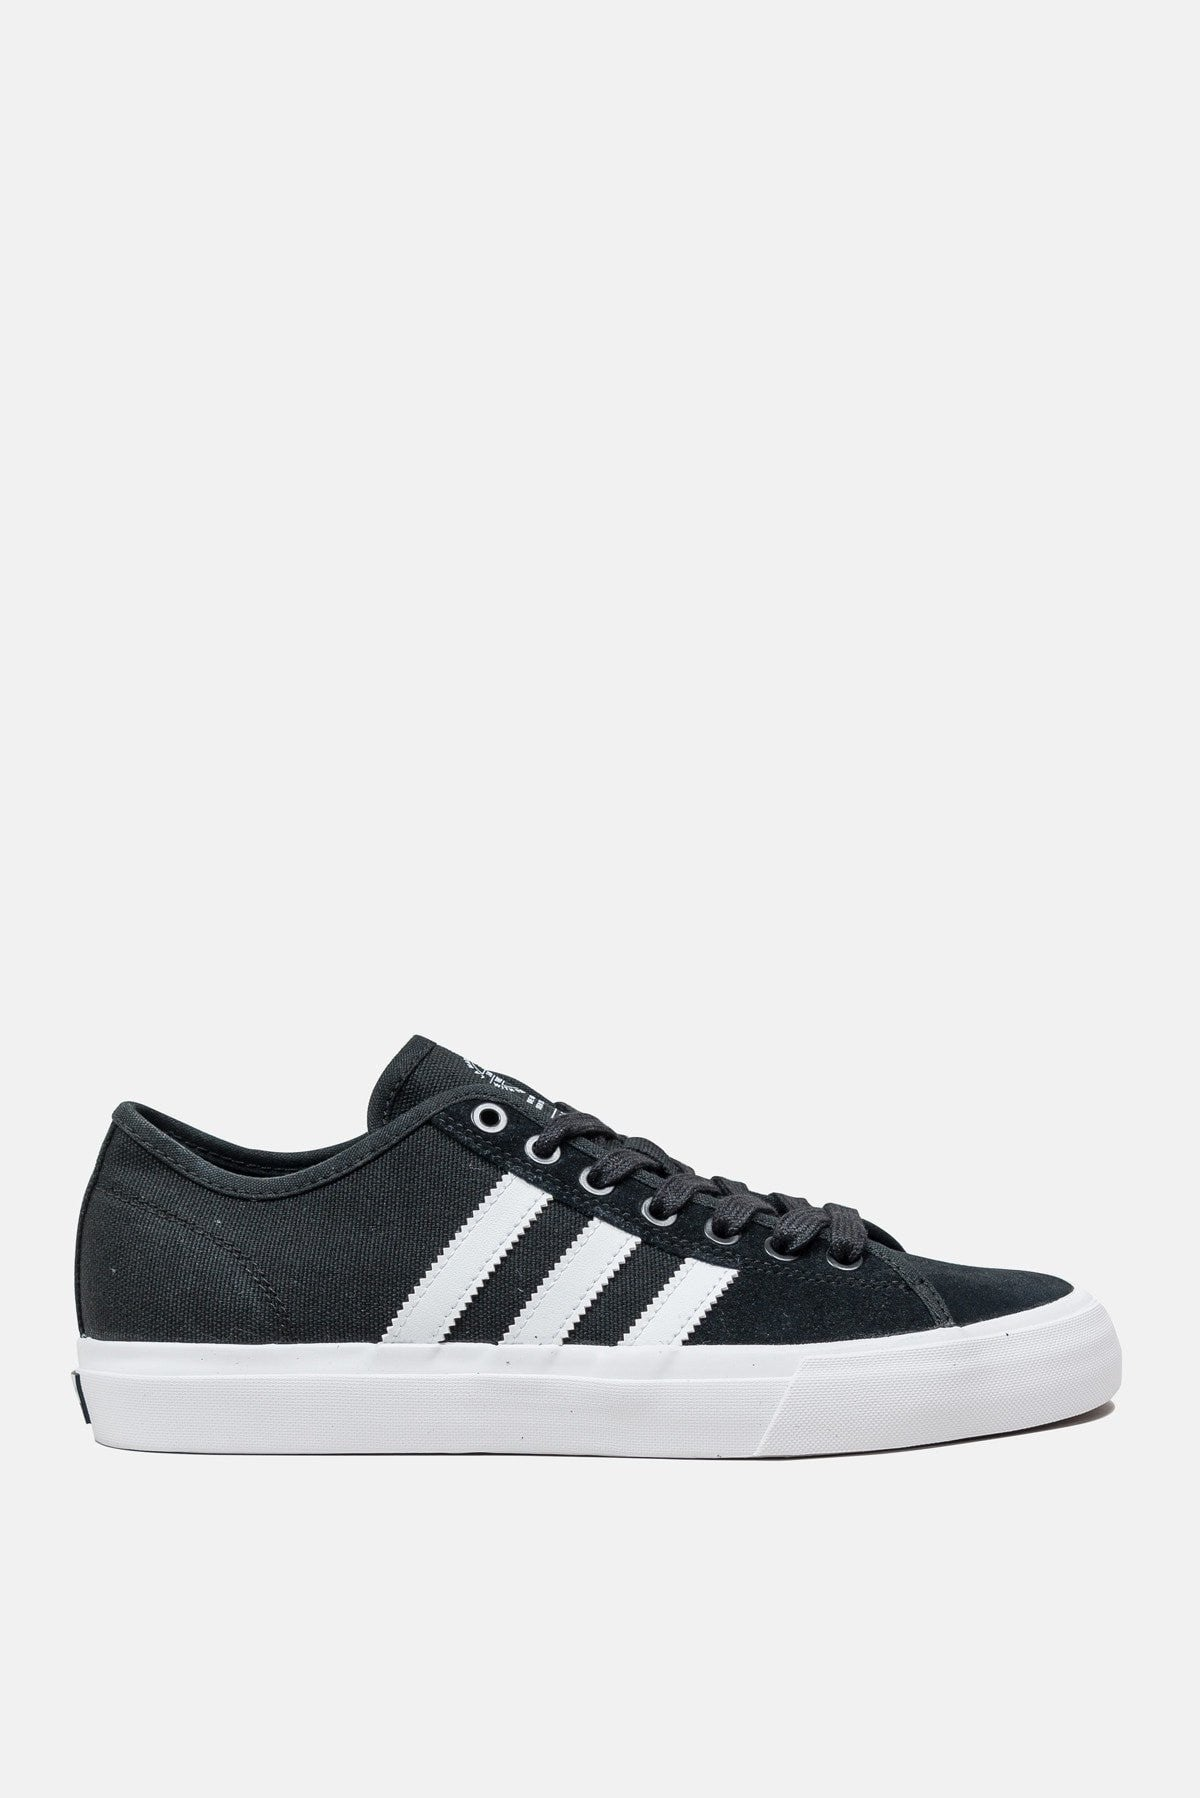 127e3178b63 Adidas Matchcourt RX Shoes available from Priory